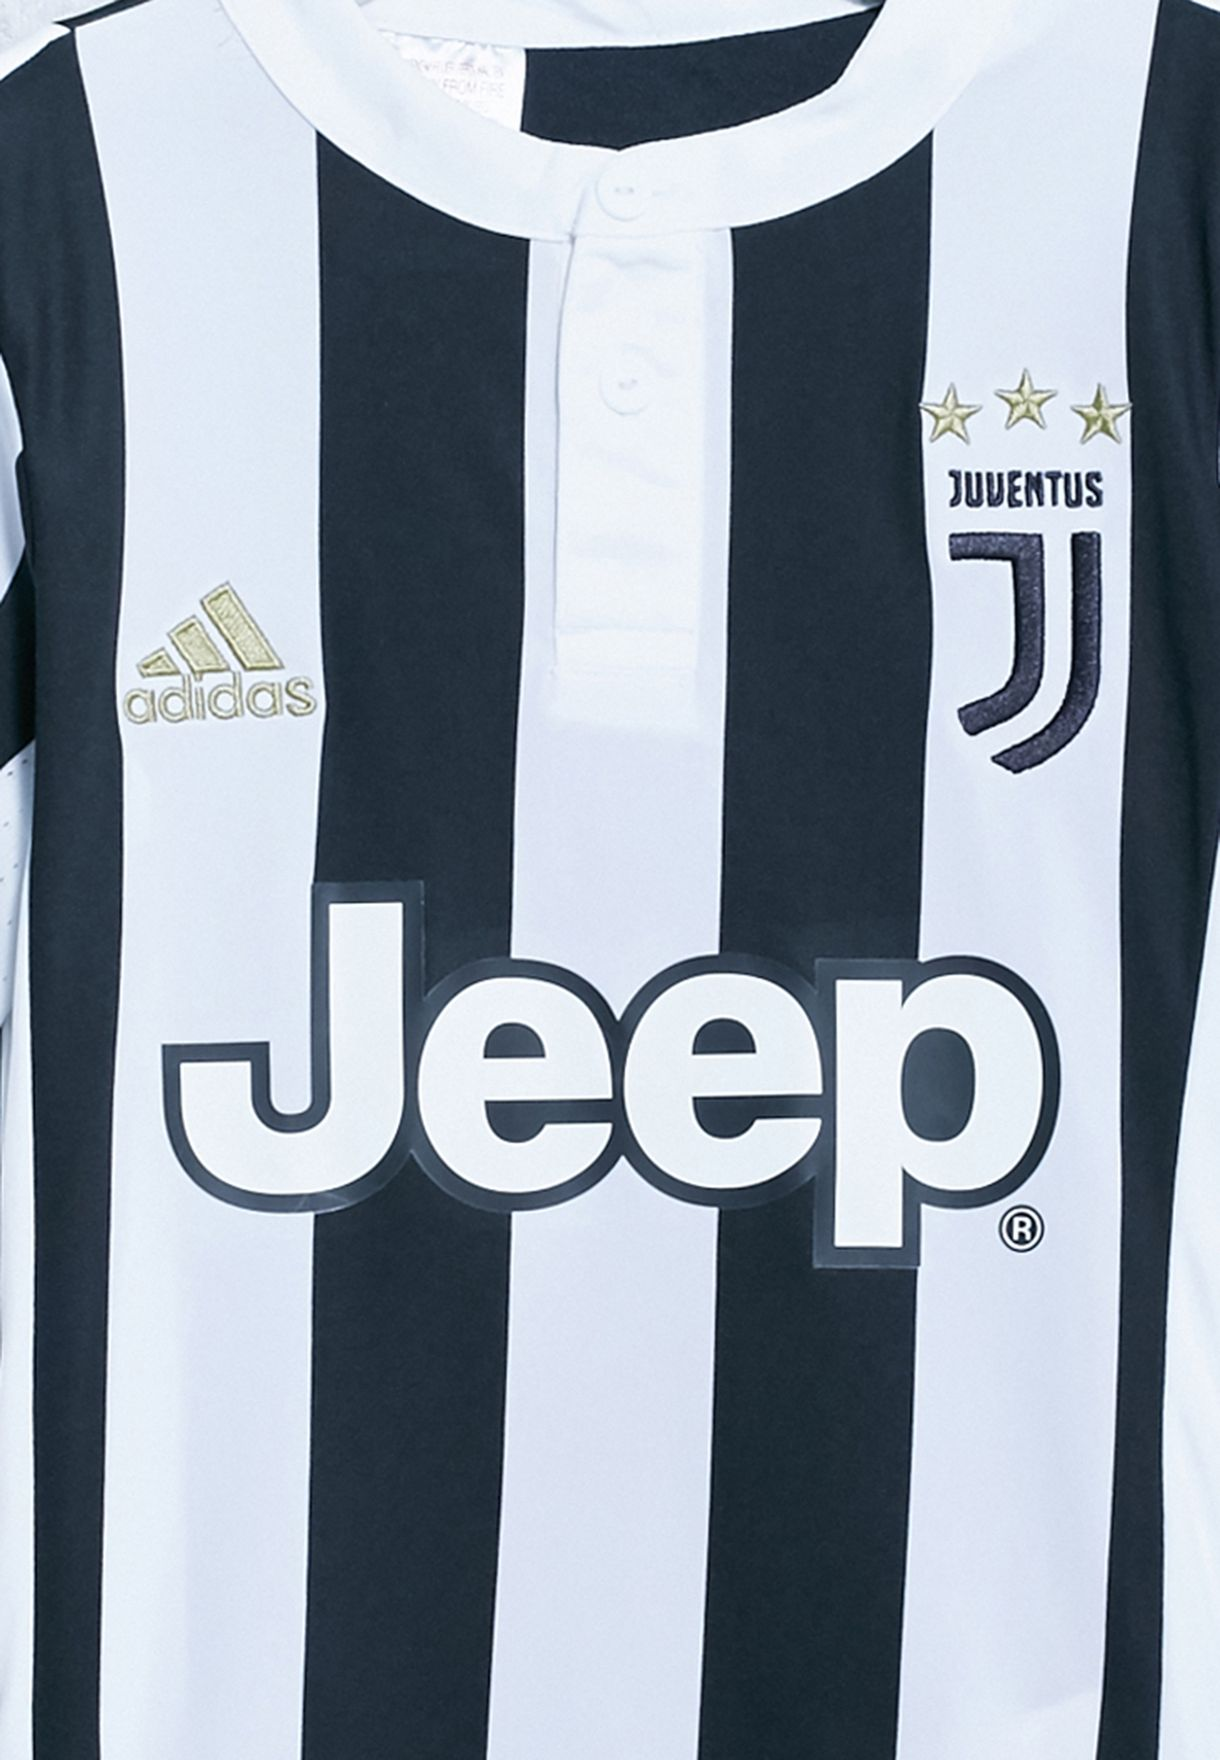 b58f26b5d5a Shop adidas monochrome Youth Juventus Home Jersey AZ8703 for Kids in ...